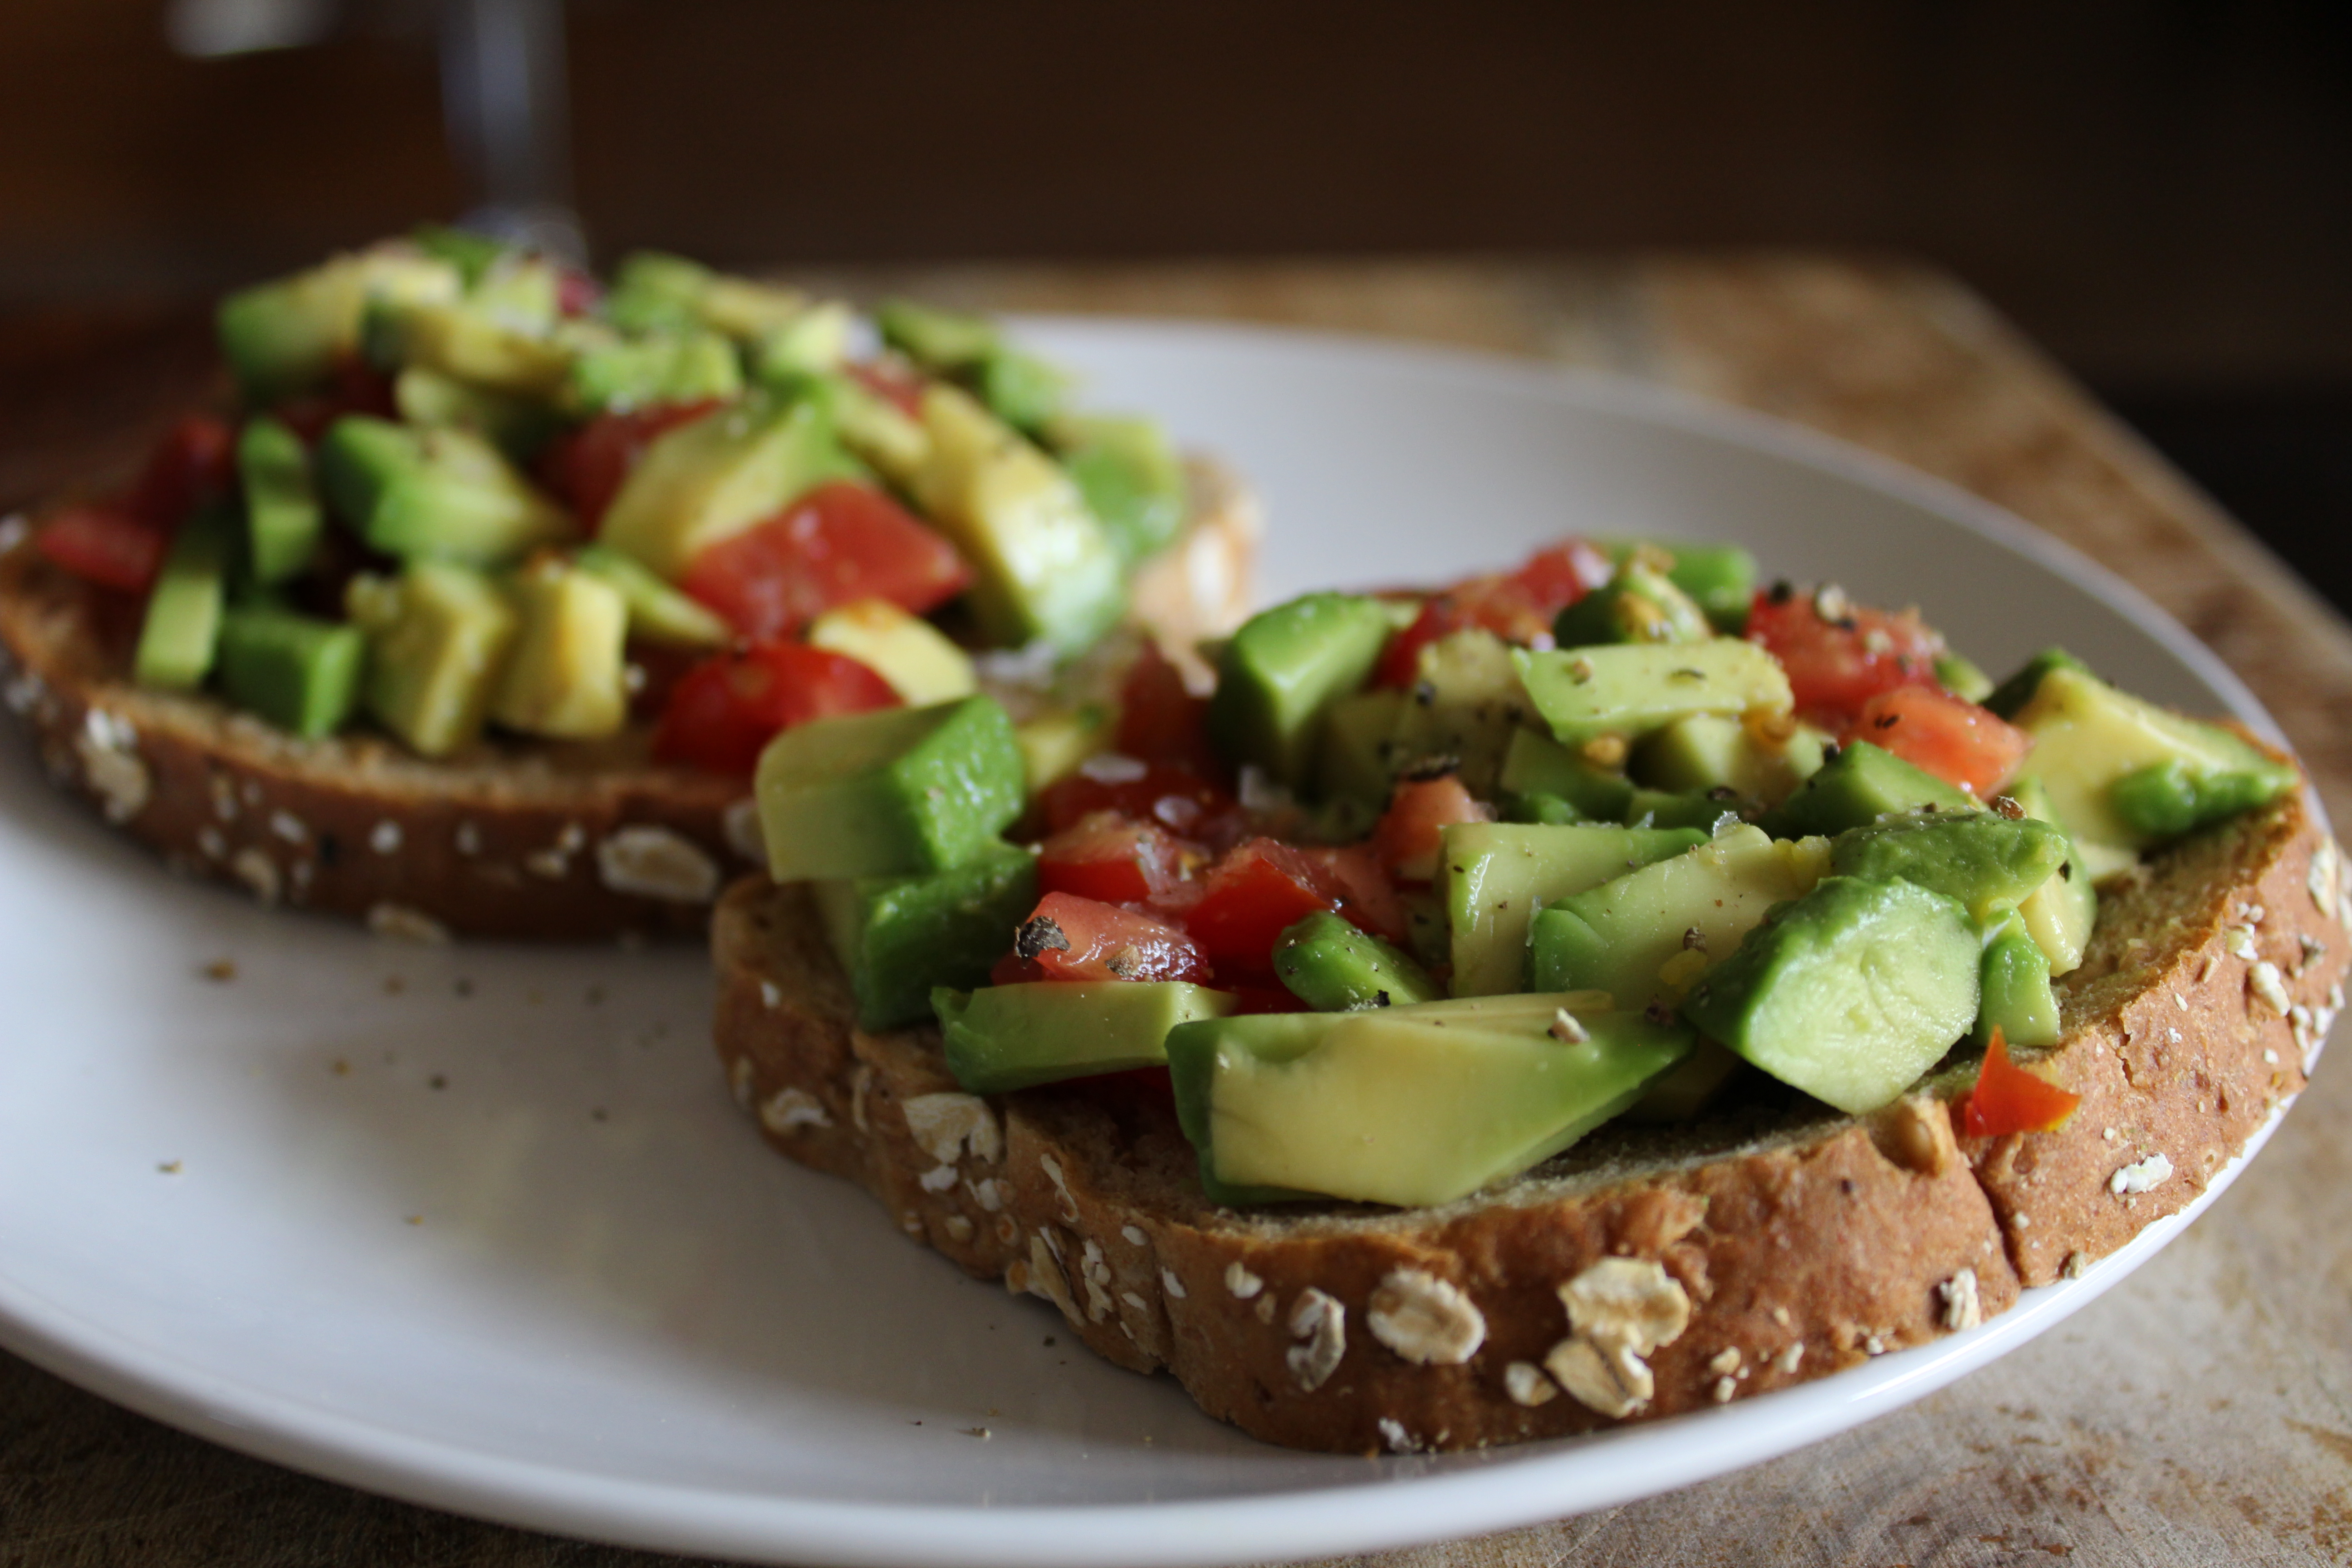 Ayi's Easy Avocado Toast